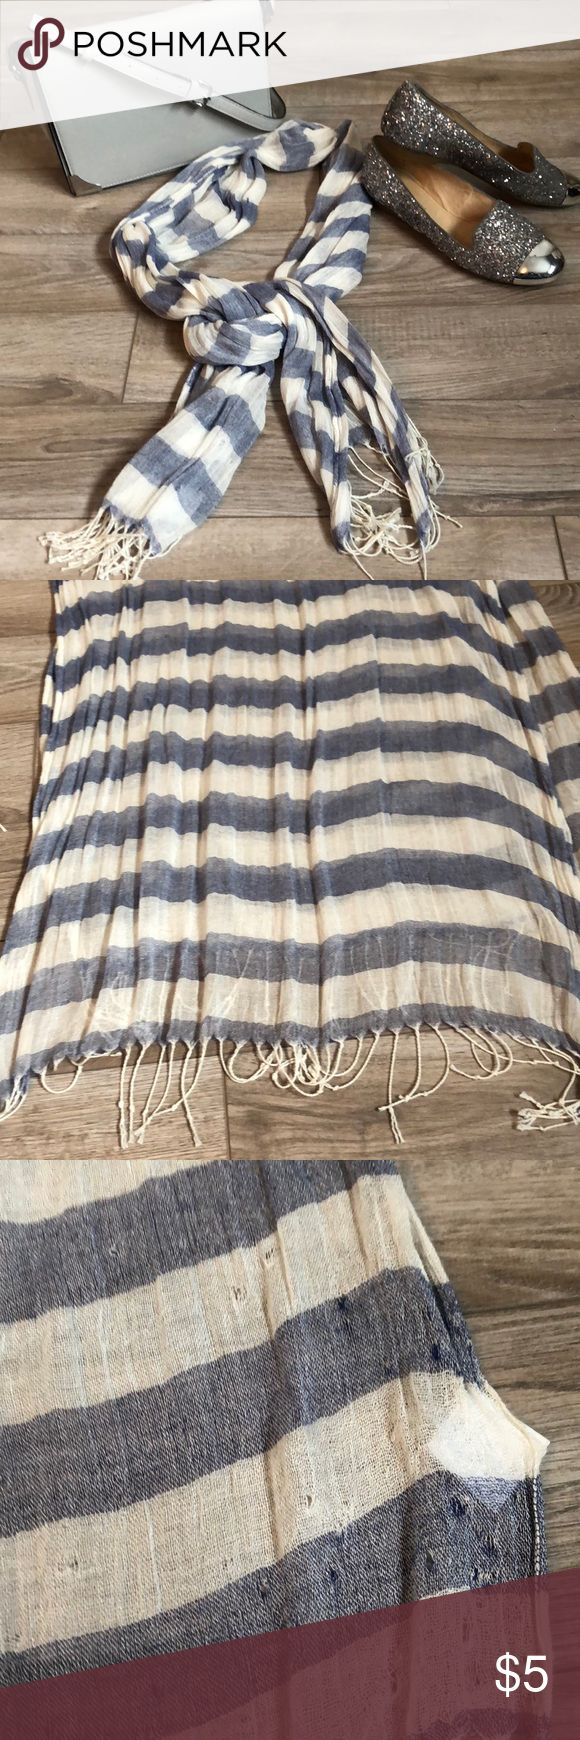 Payless sheer tassle scarf 63x30 some snags as shown. Still in great condition. Light weight and airy. Great for all seasons. Payless Accessories Scarves & Wraps